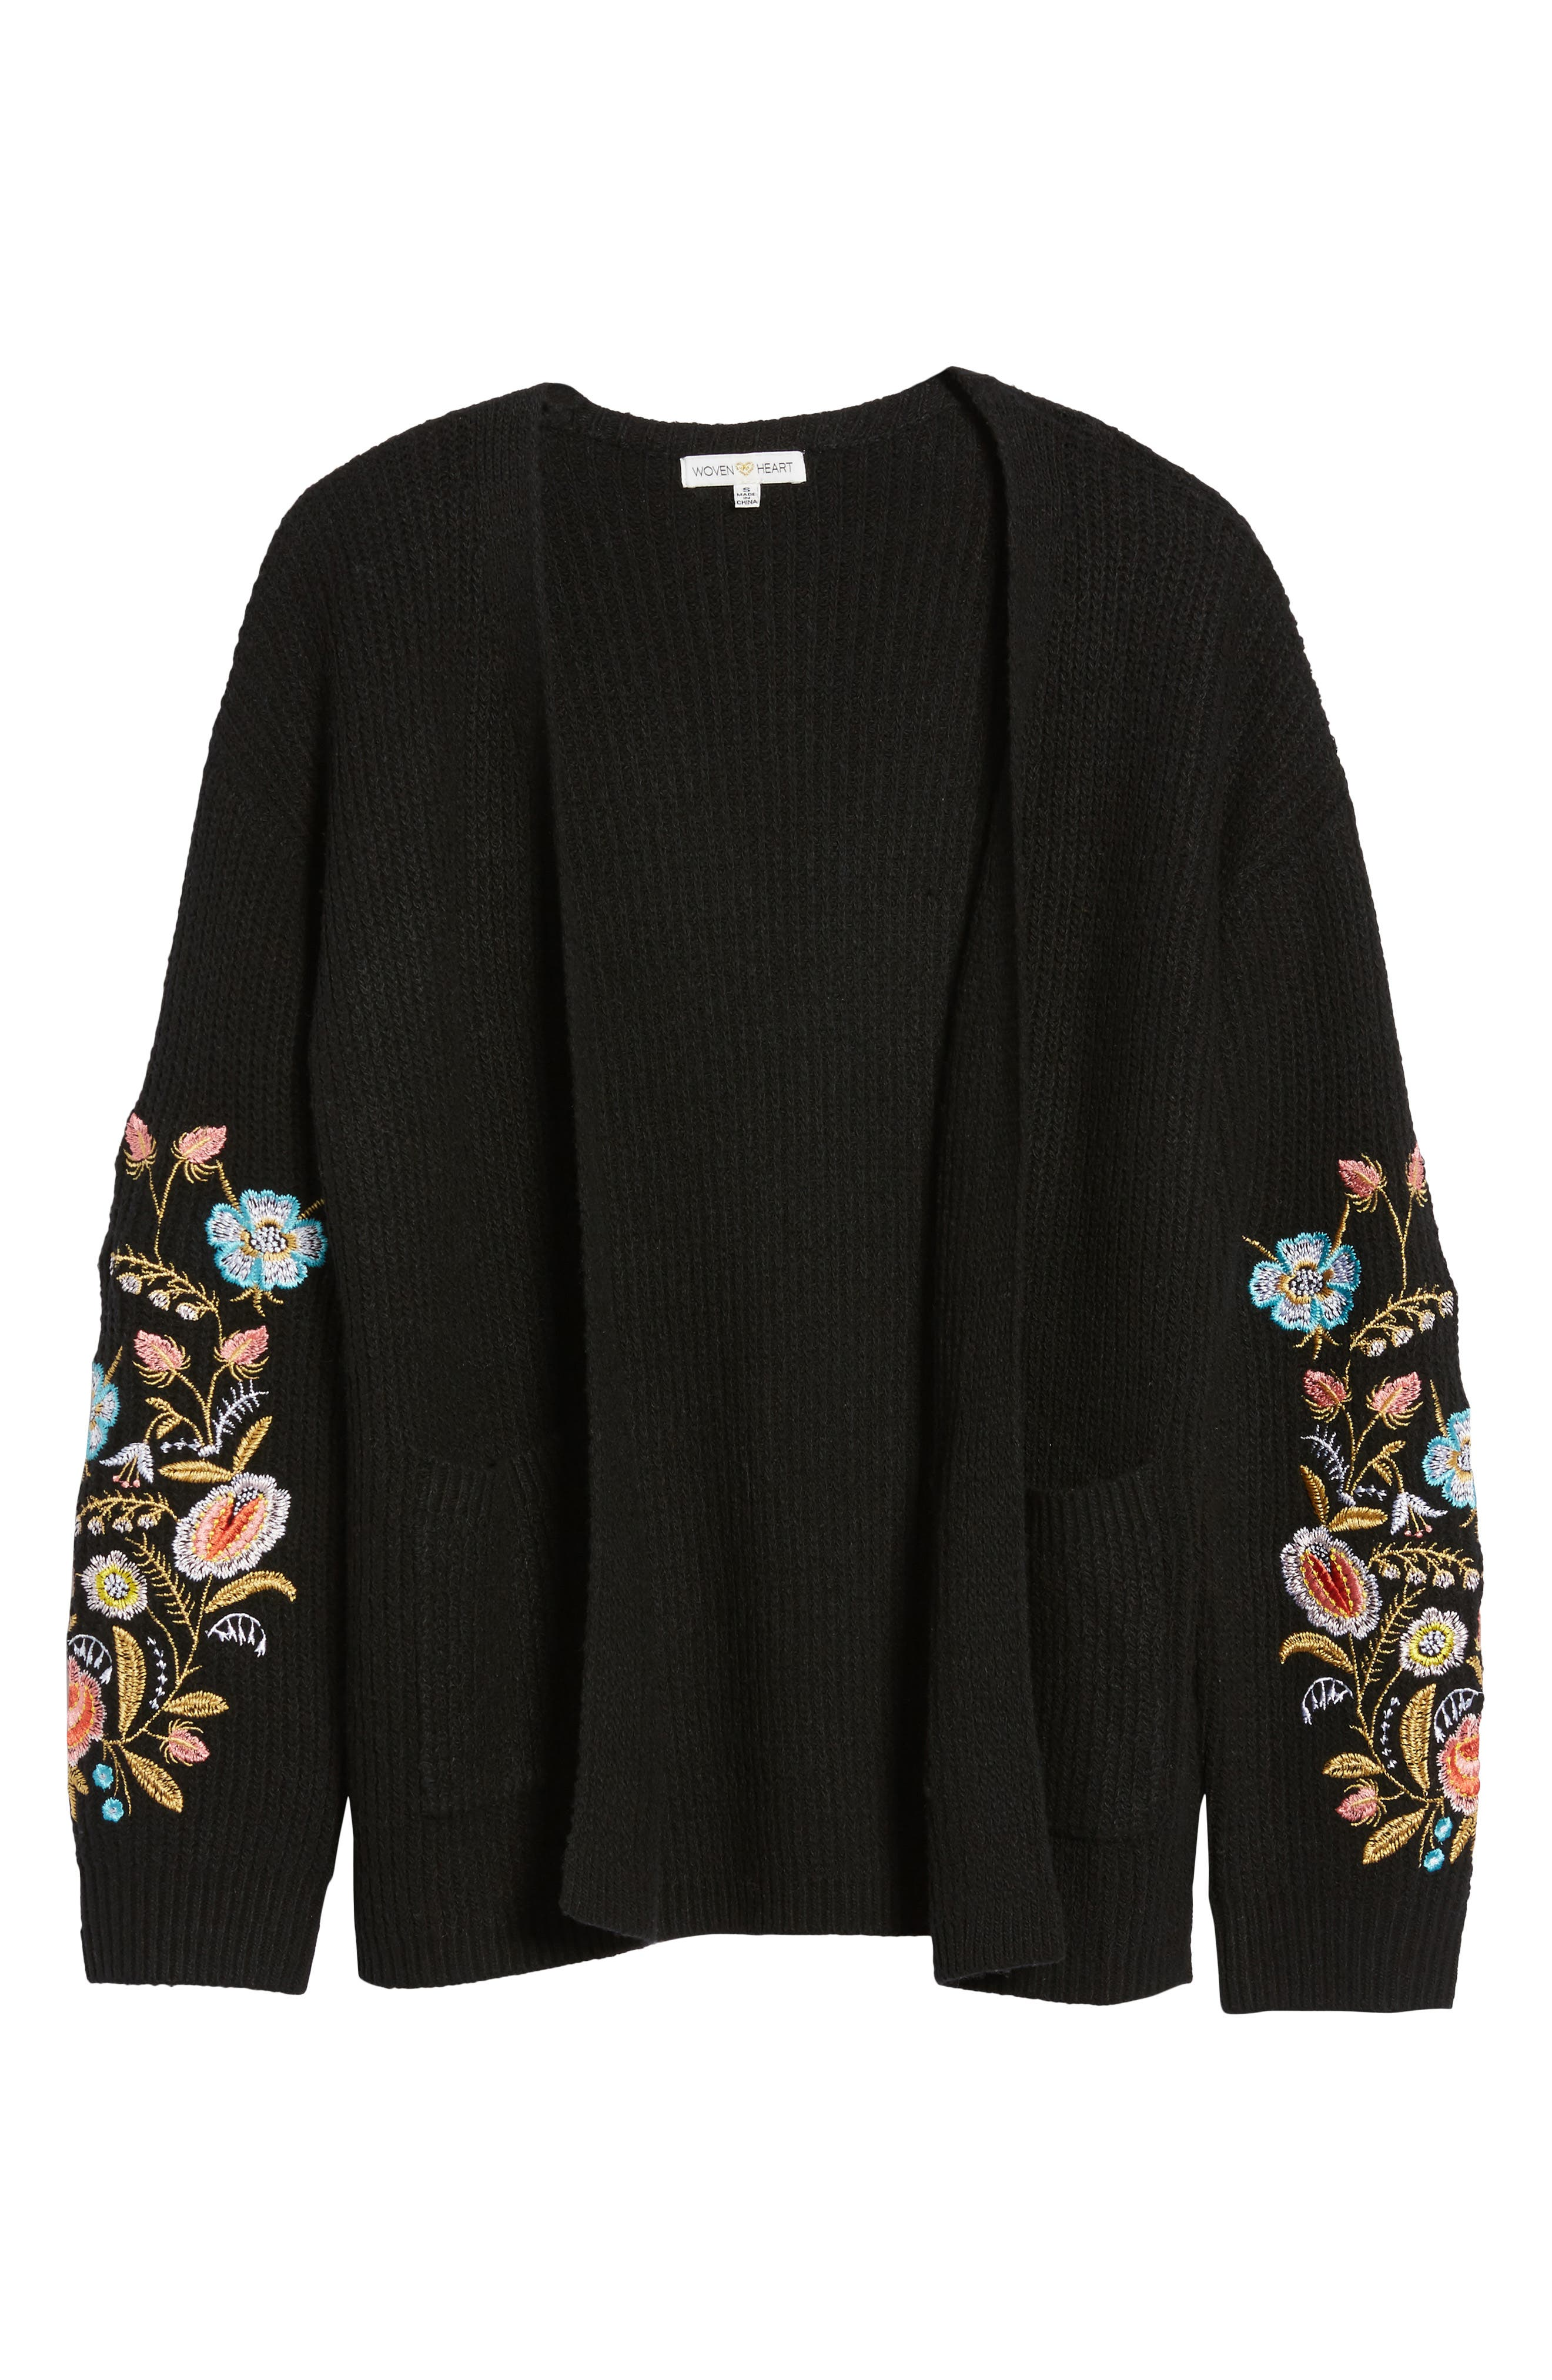 Embroidered Cardigan,                             Alternate thumbnail 6, color,                             001